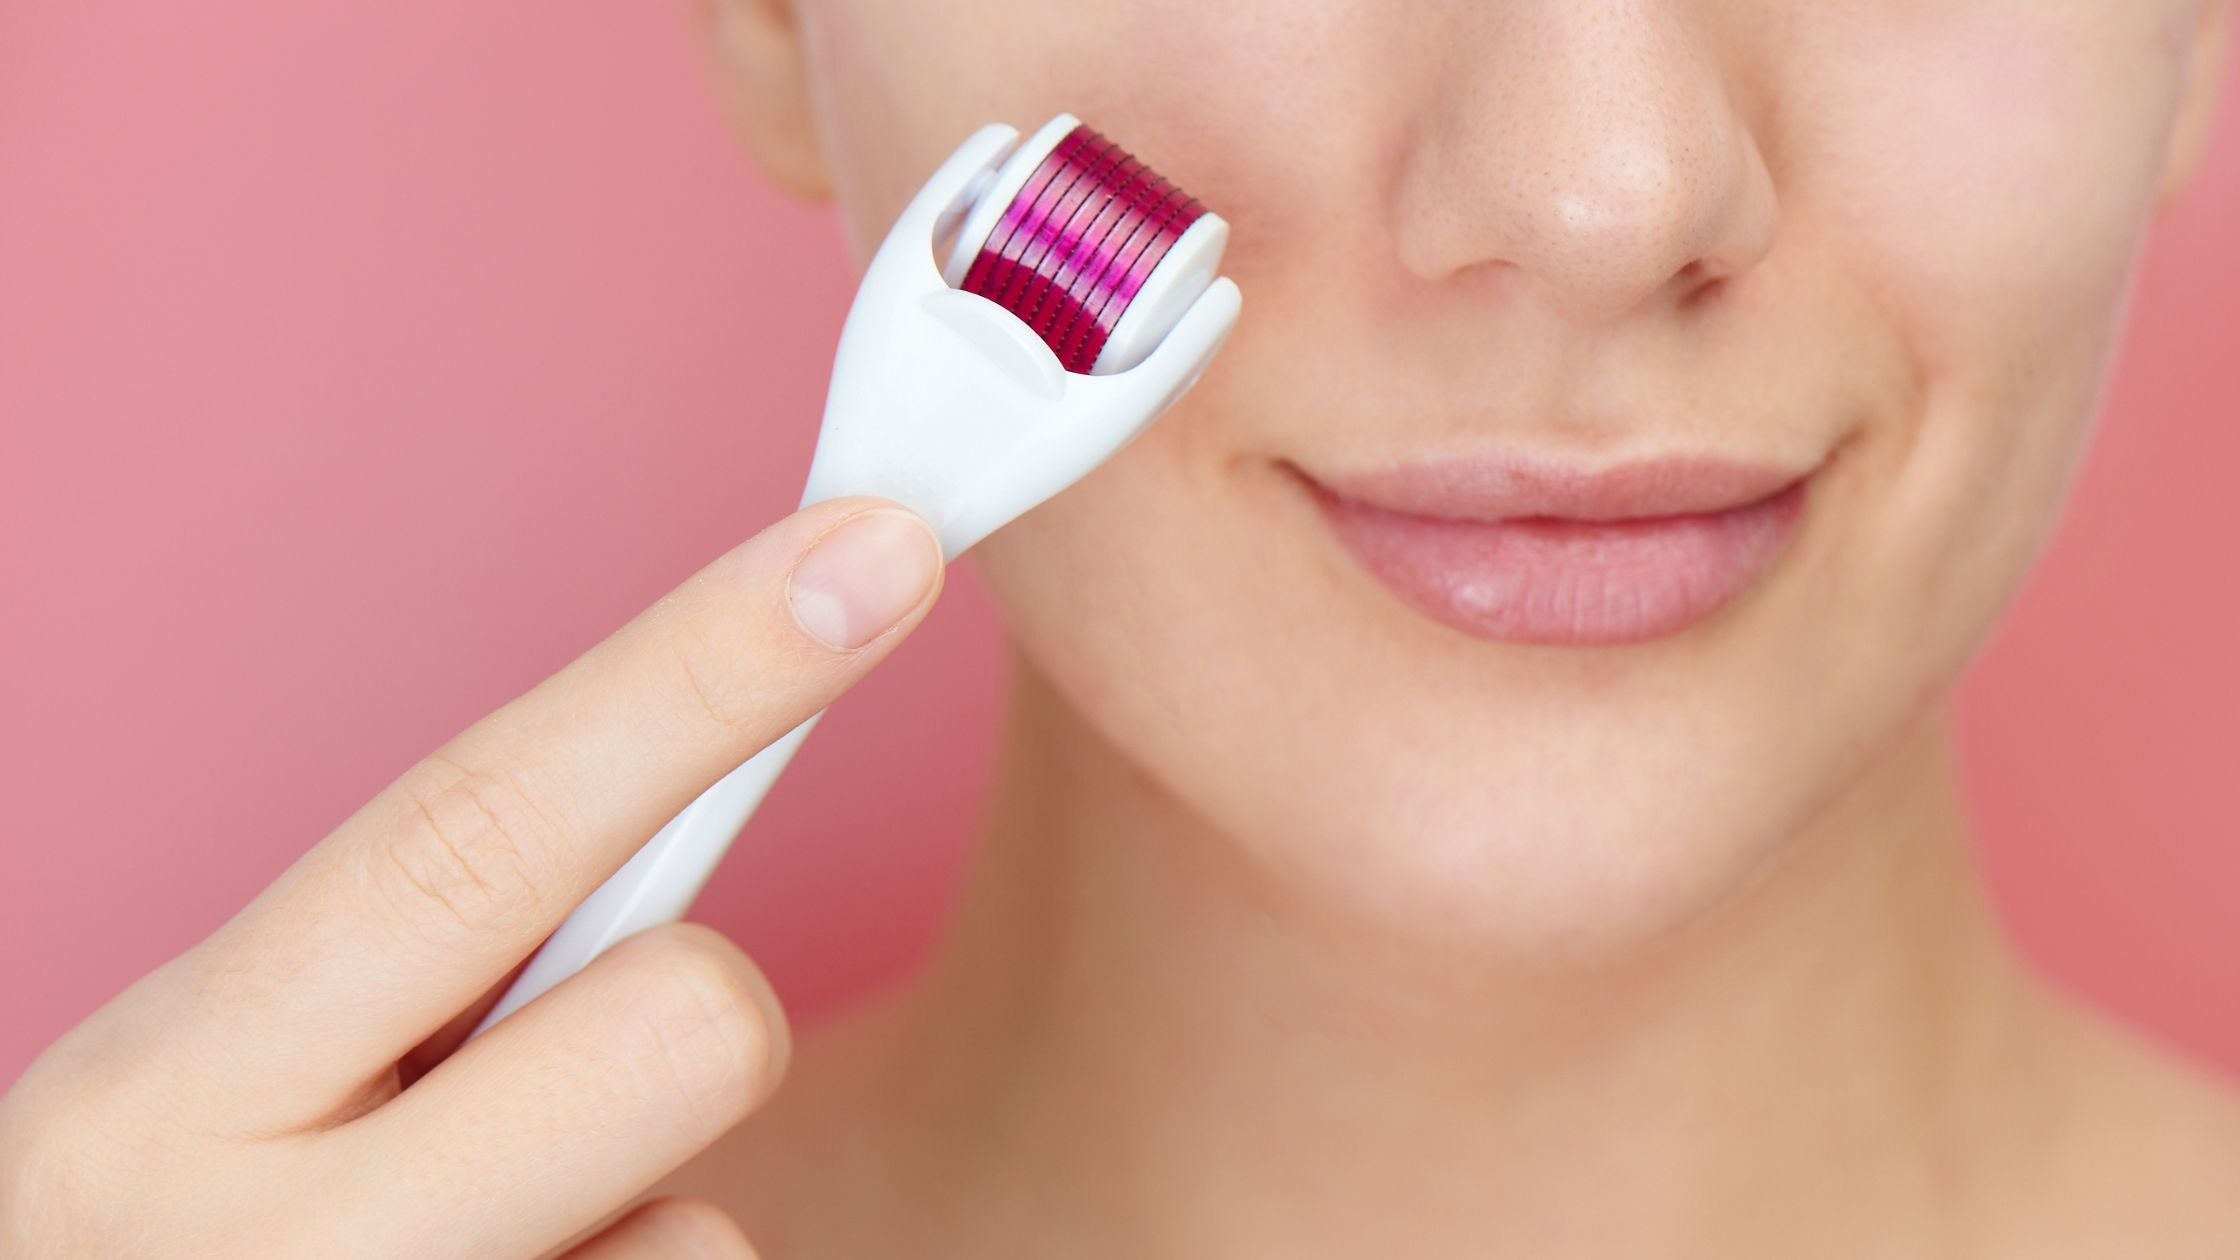 What is Derma roller?